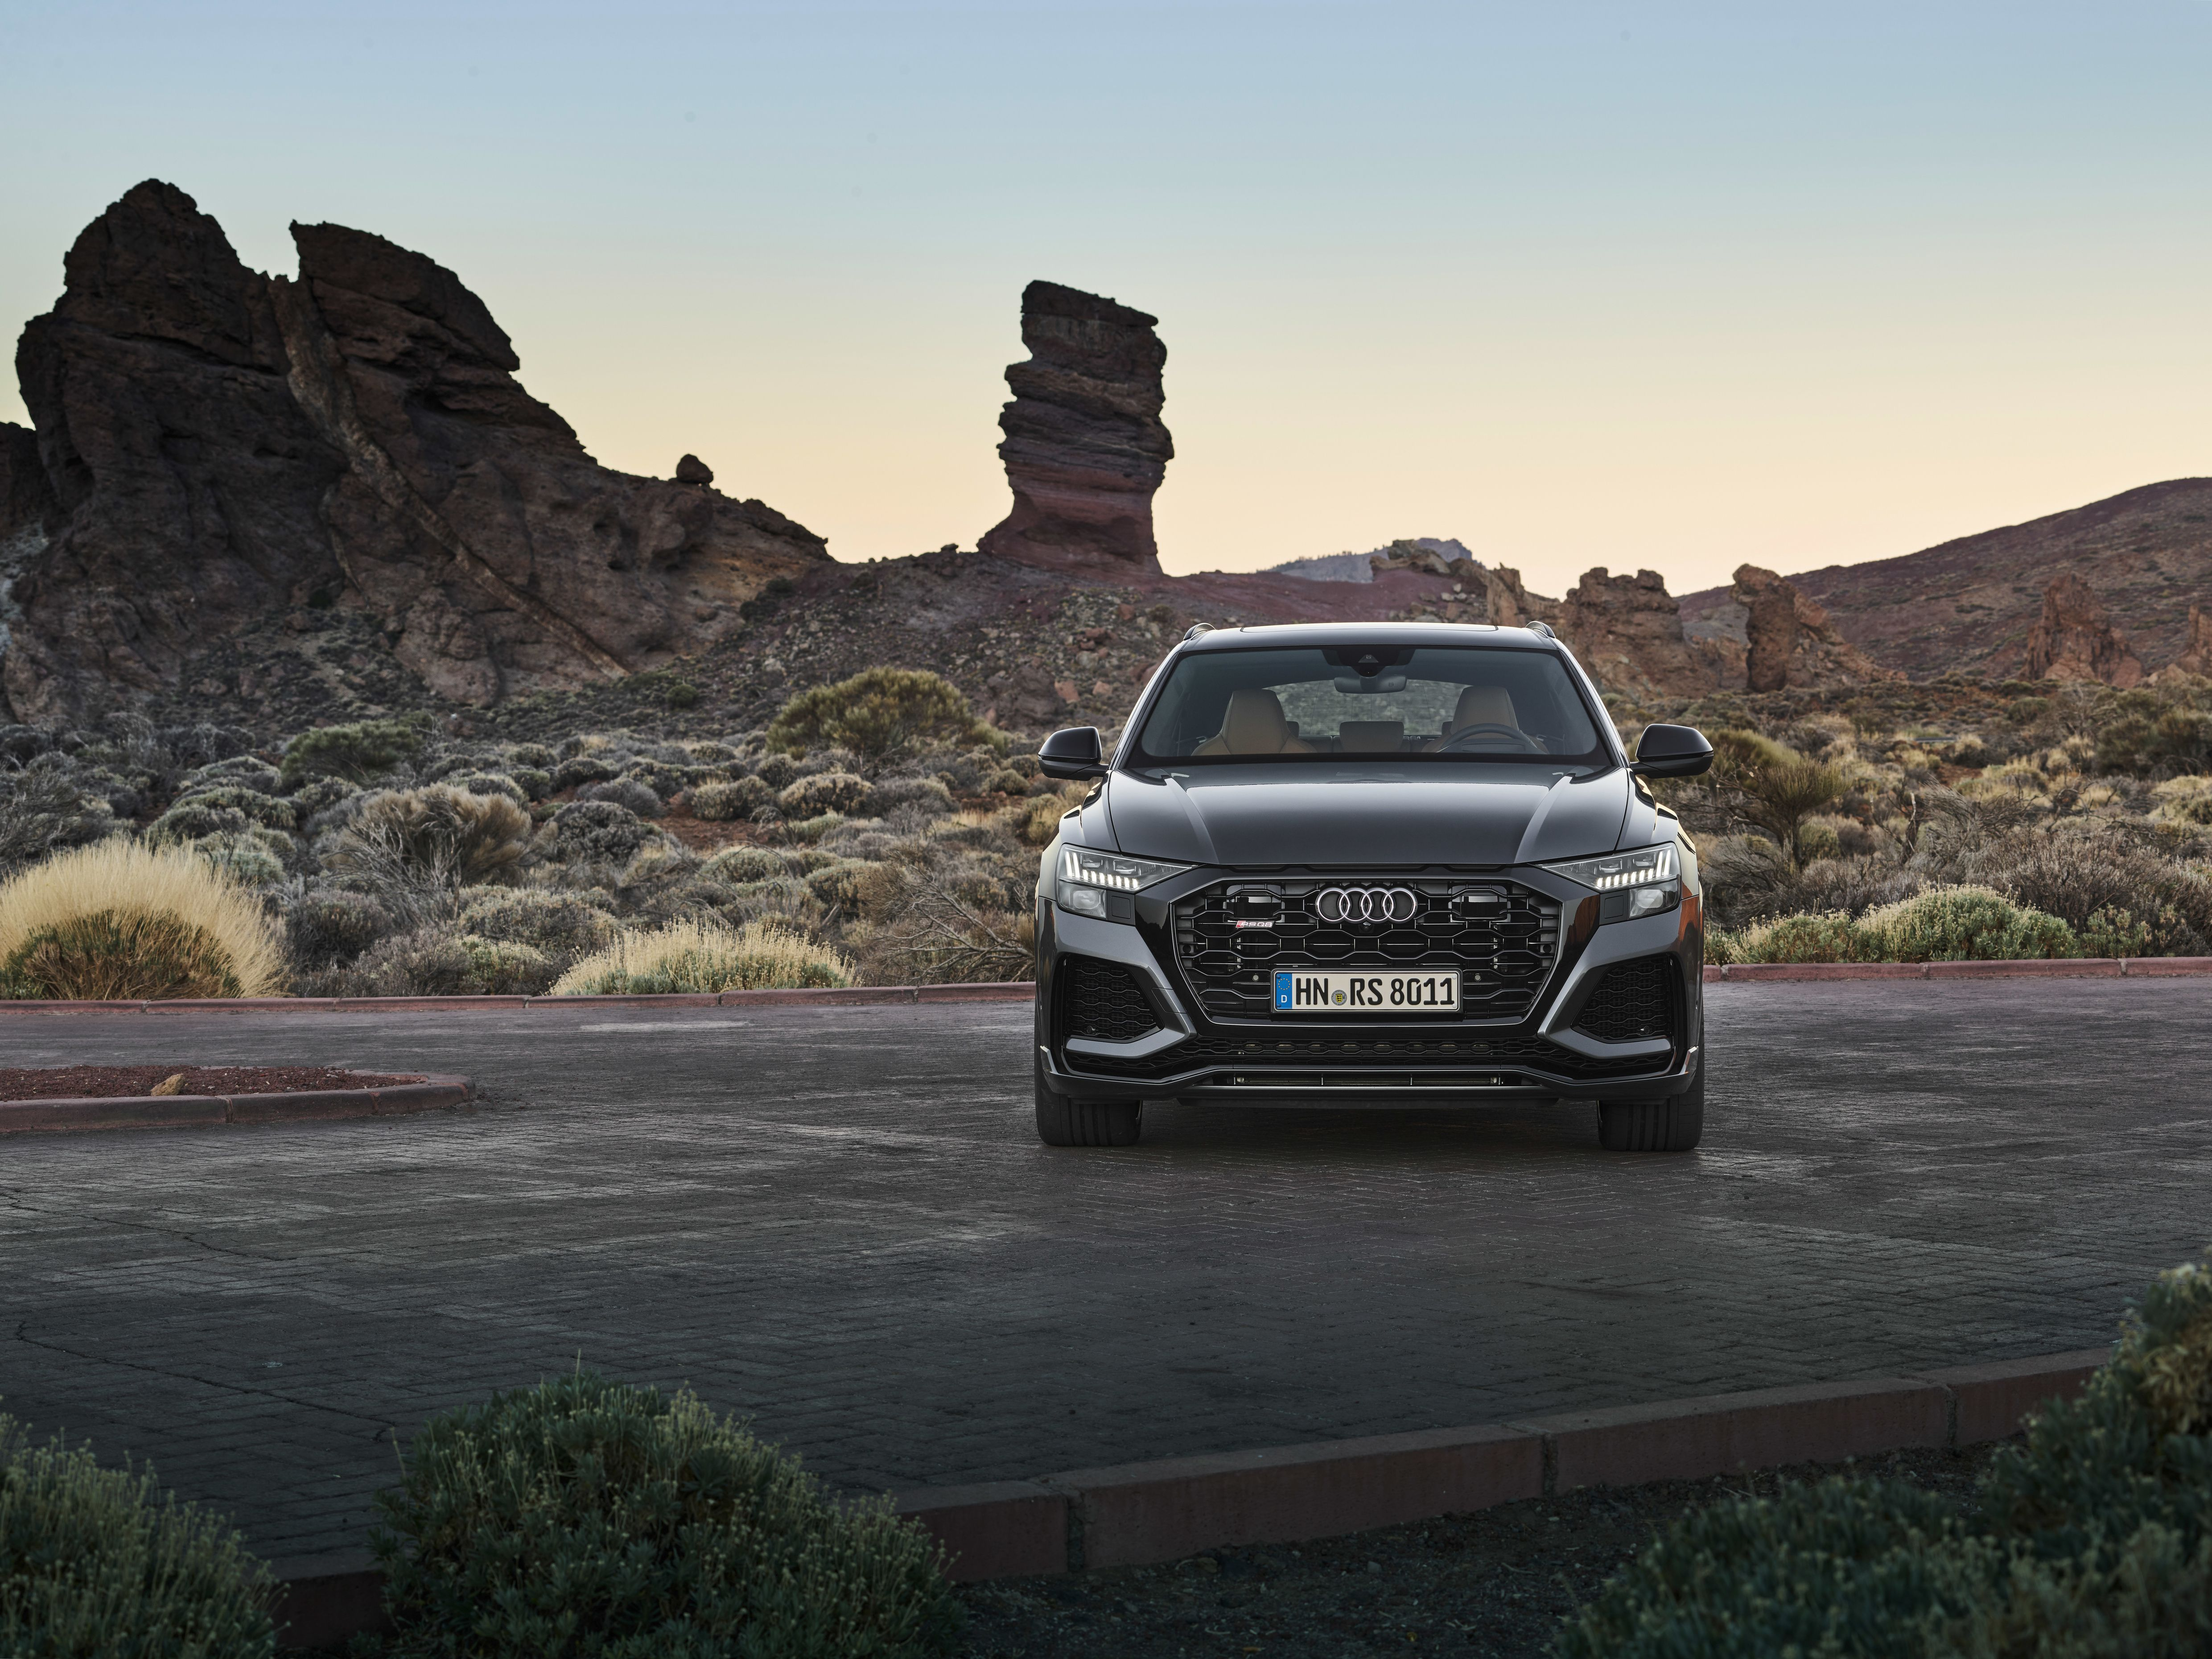 2020 Audi Rs Q8 To Start At 113 000 In America In 2020 Audi Rs Audi First Drive